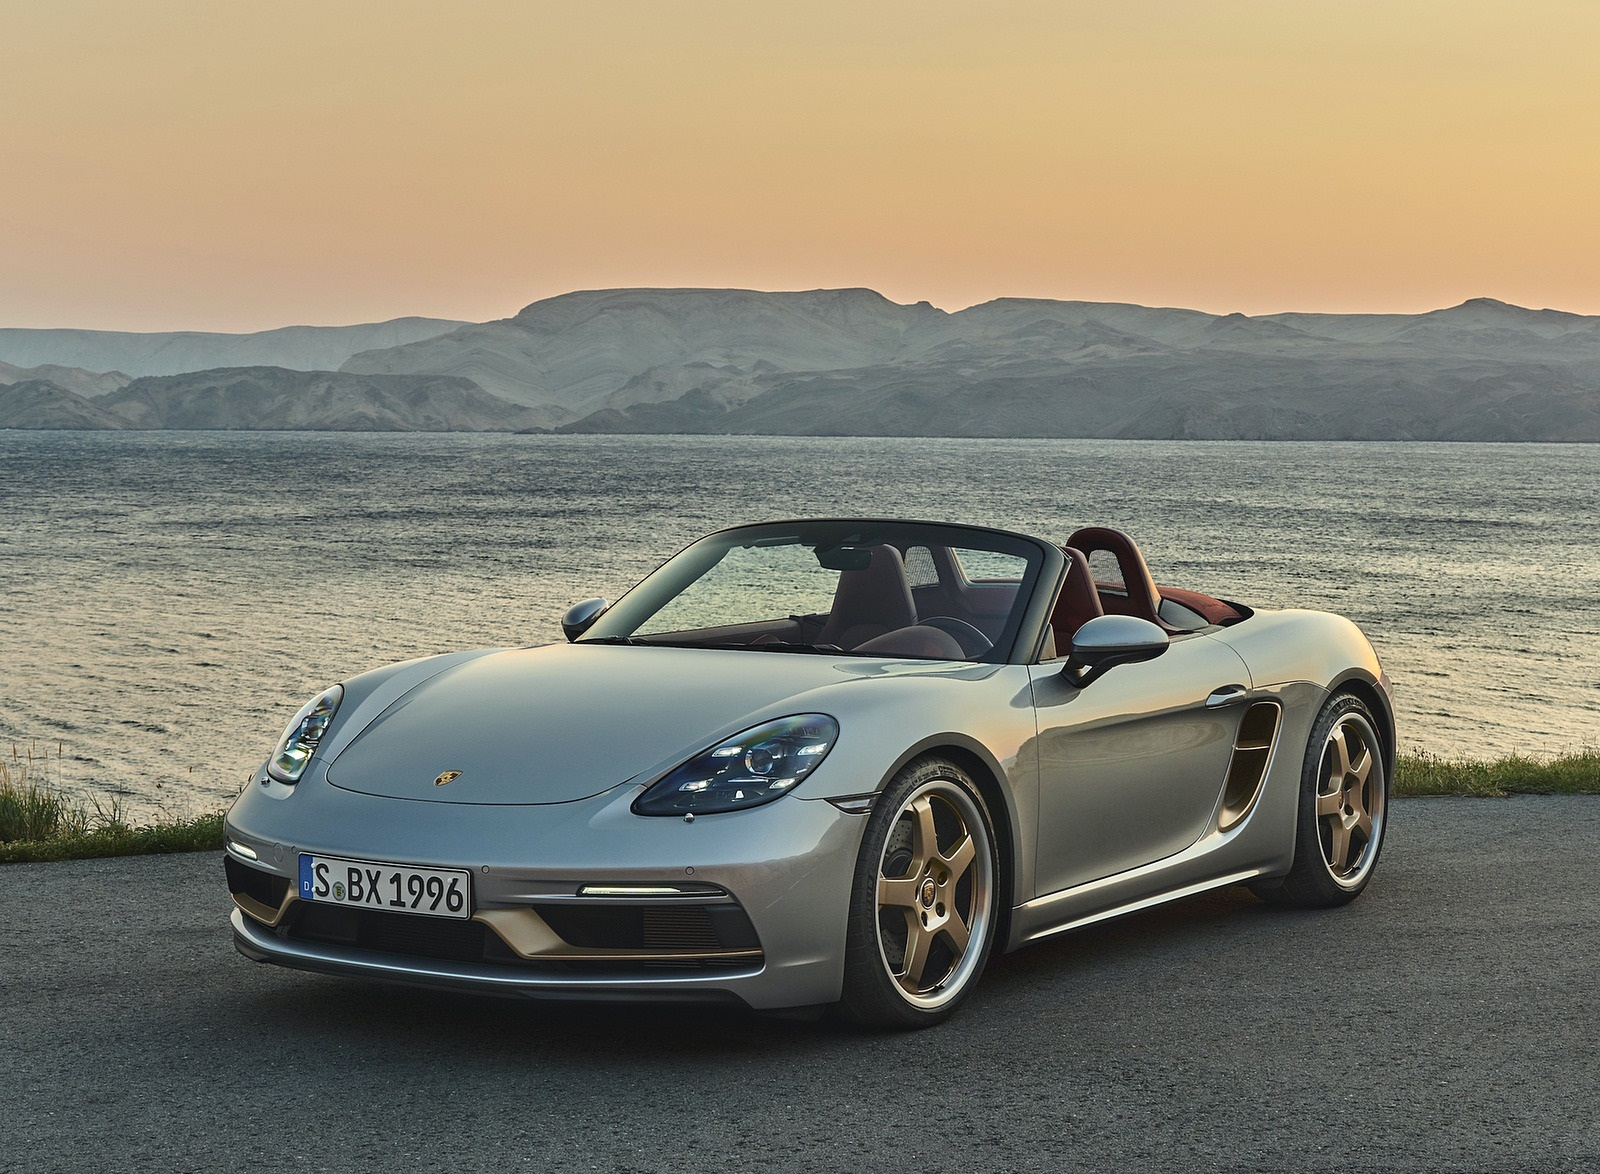 2021 Porsche 718 Boxster GTS 4.0 25 years Front Three-Quarter Wallpapers #3 of 10